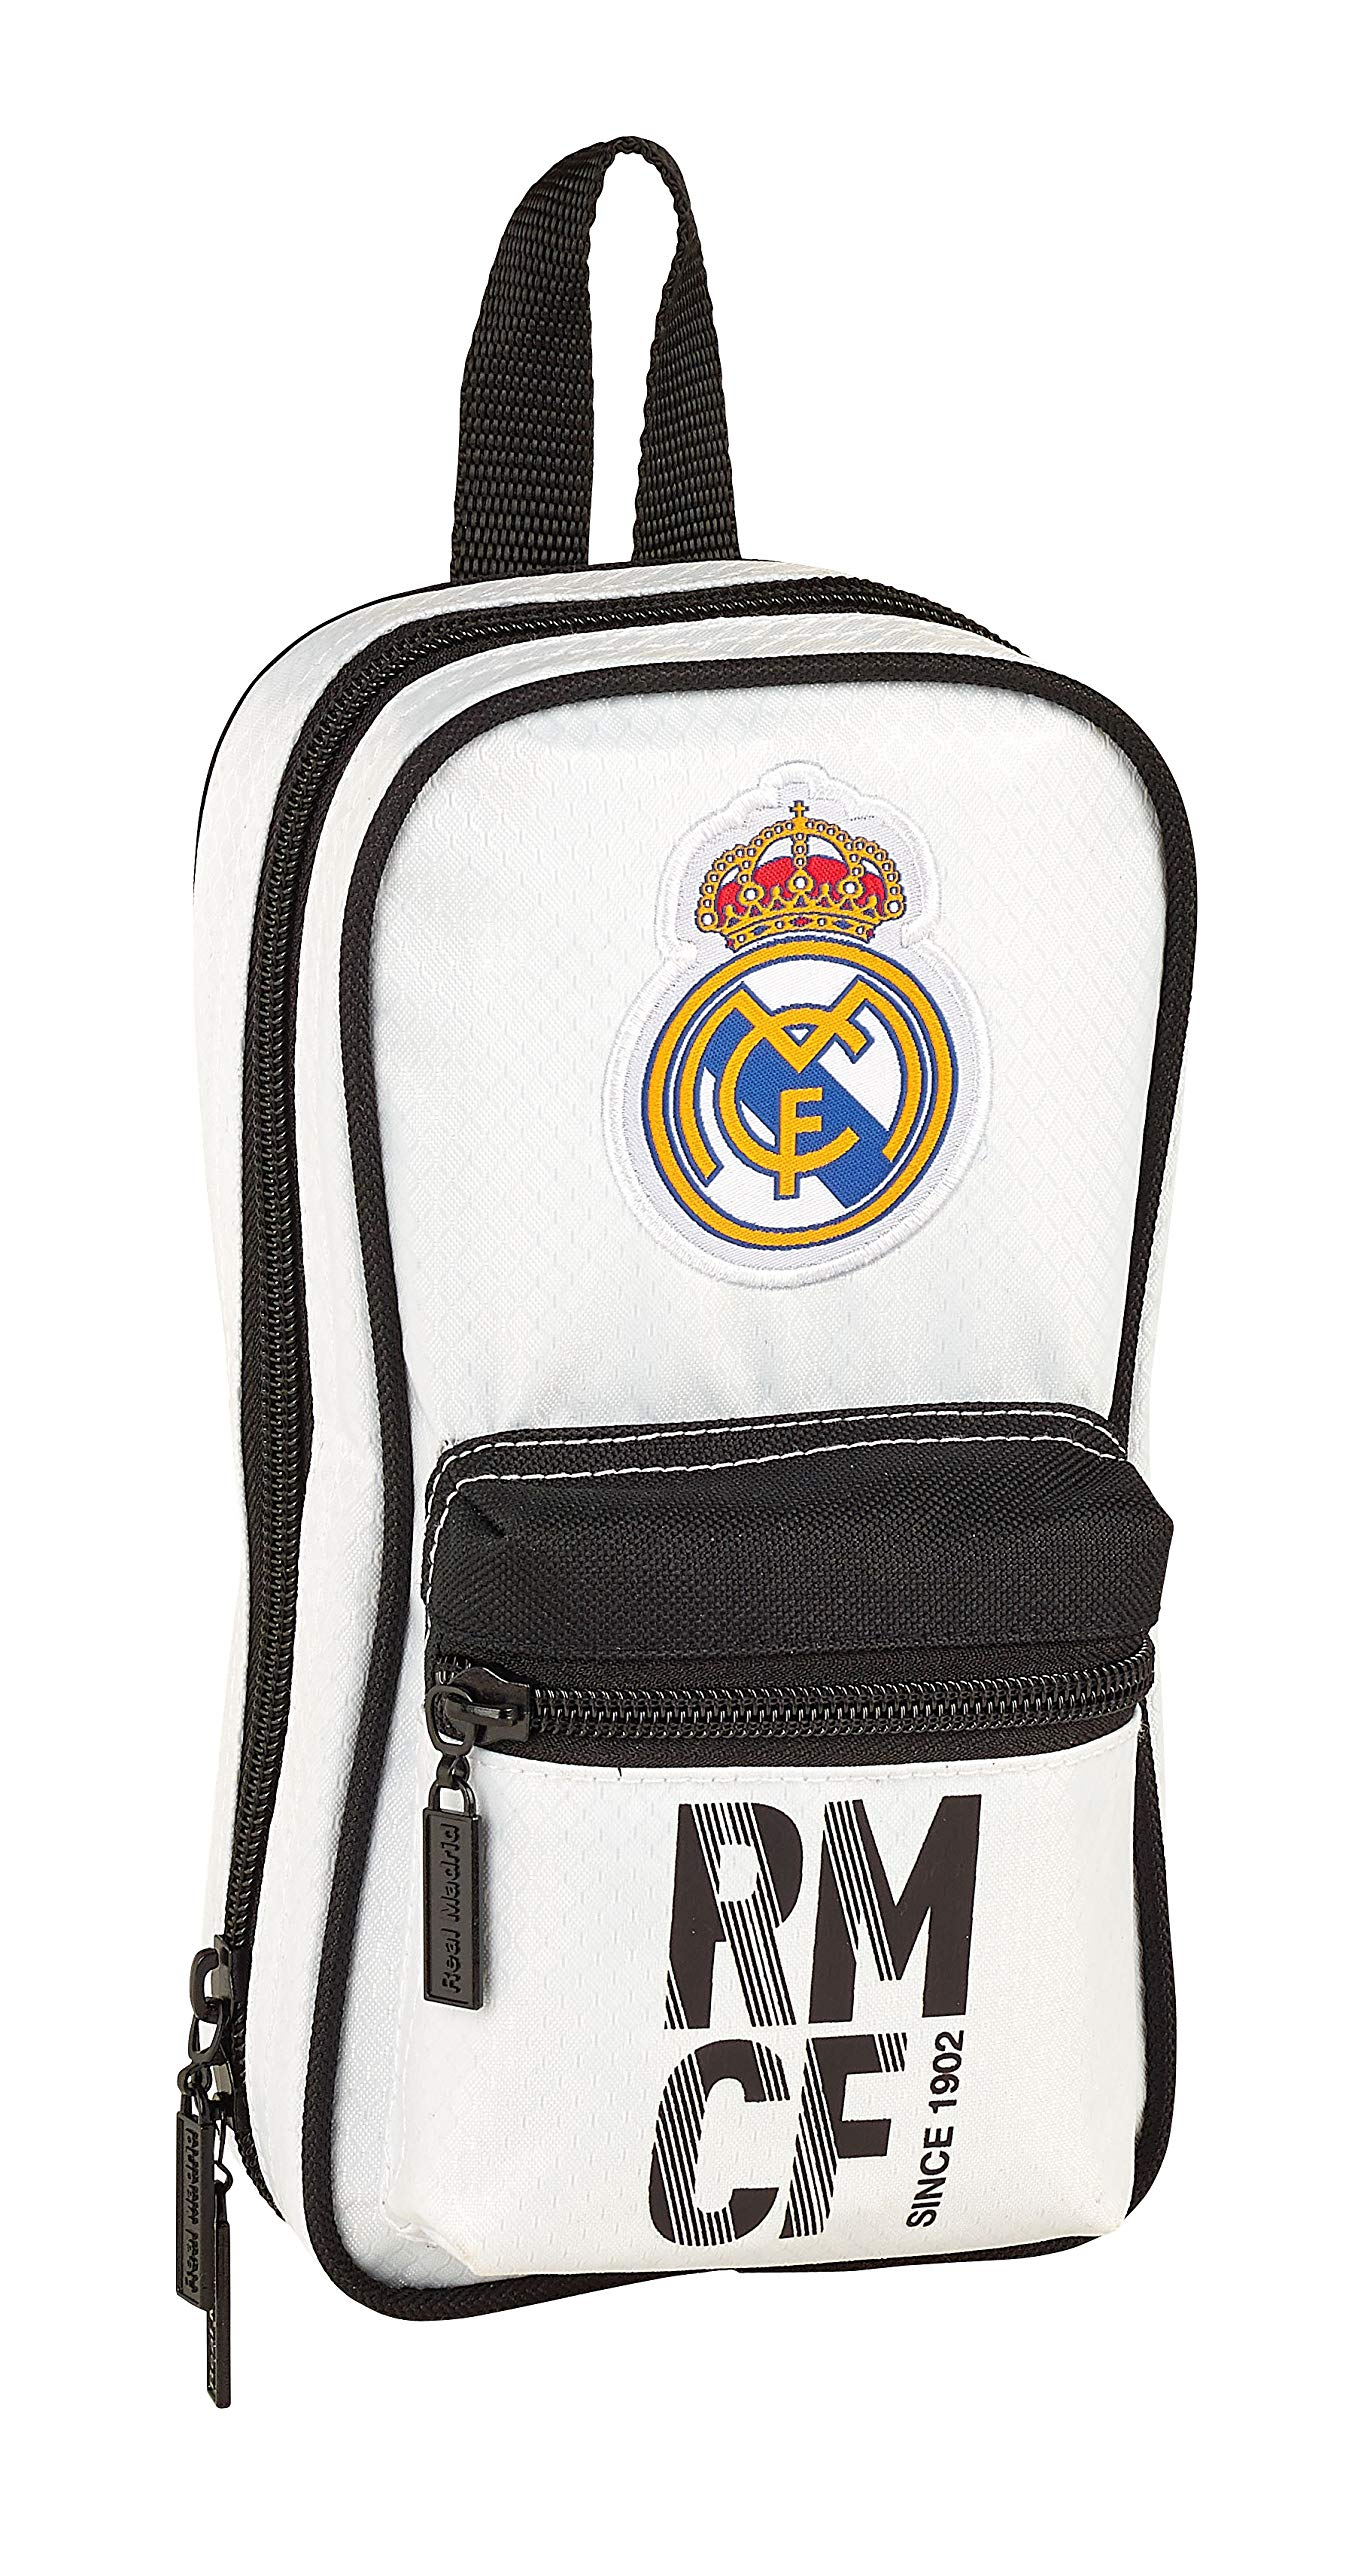 Real Madrid 411854747 2018 Bolsa de Aseo 23 cm, Blanco